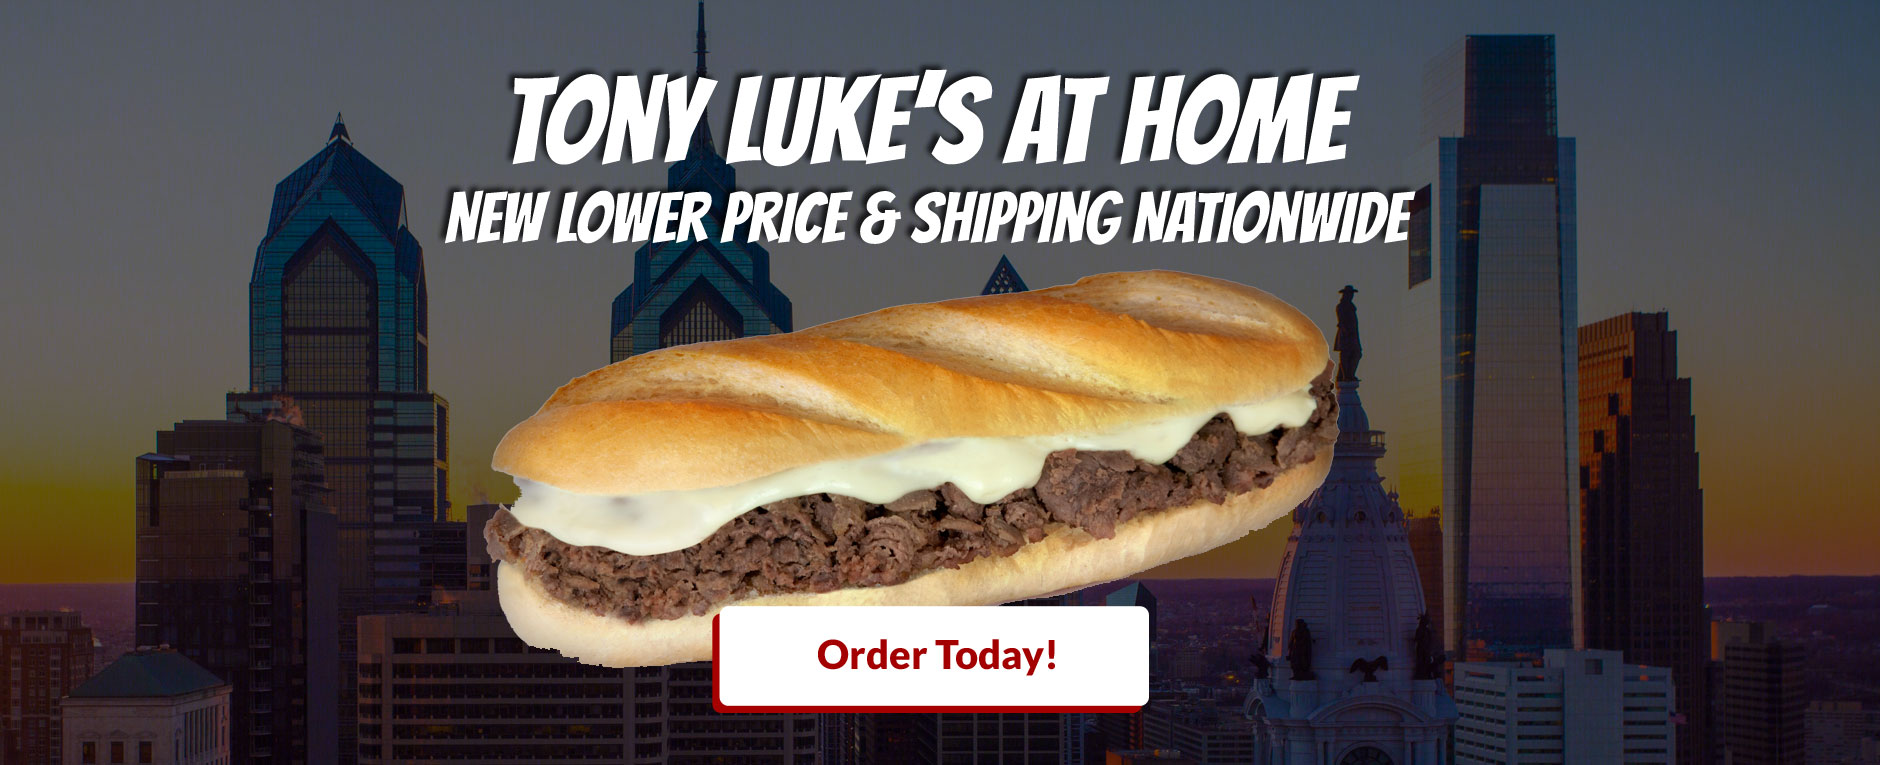 philly-cheesesteak-shipping